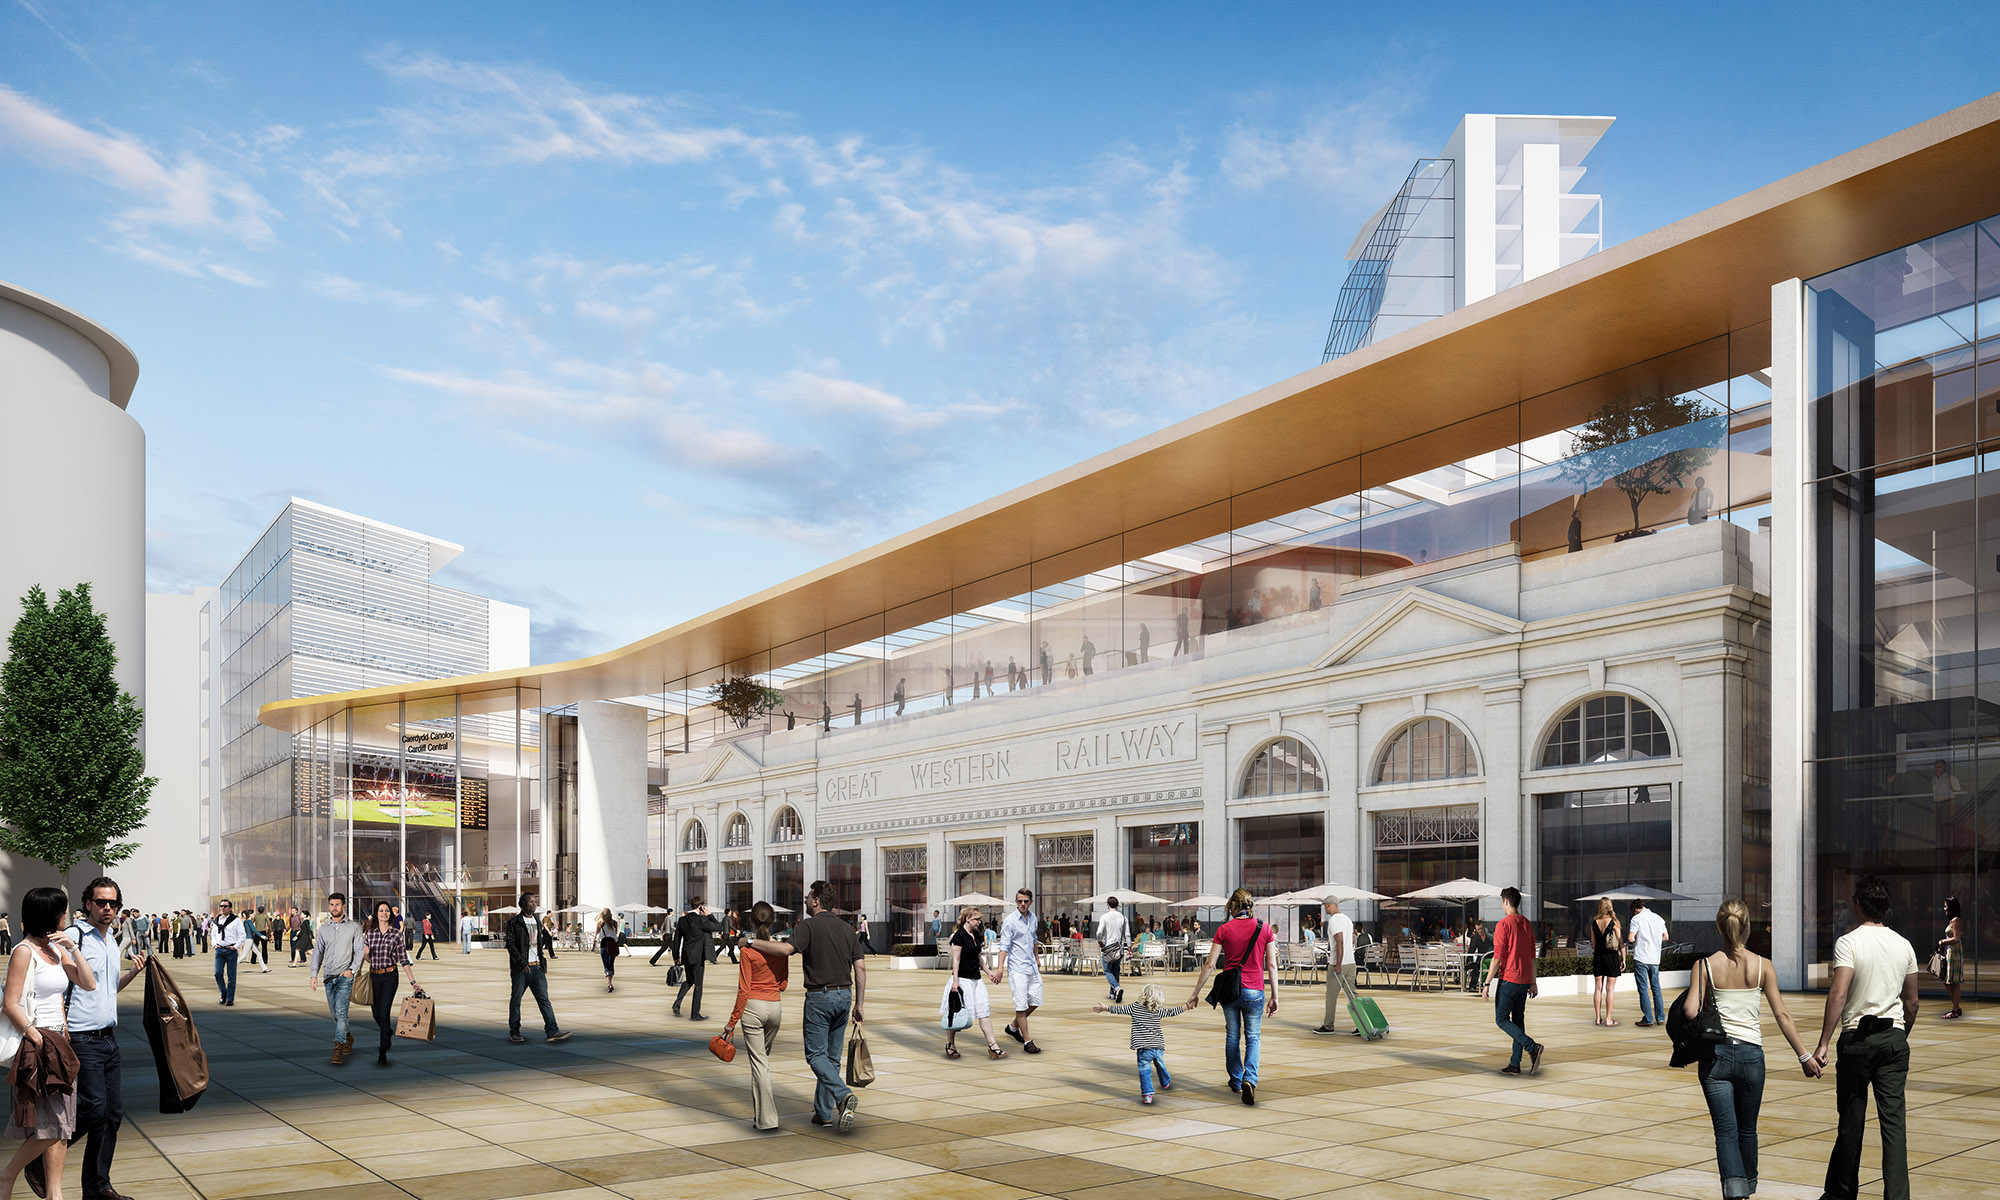 Cardiff Central CGI 3D Visualisation